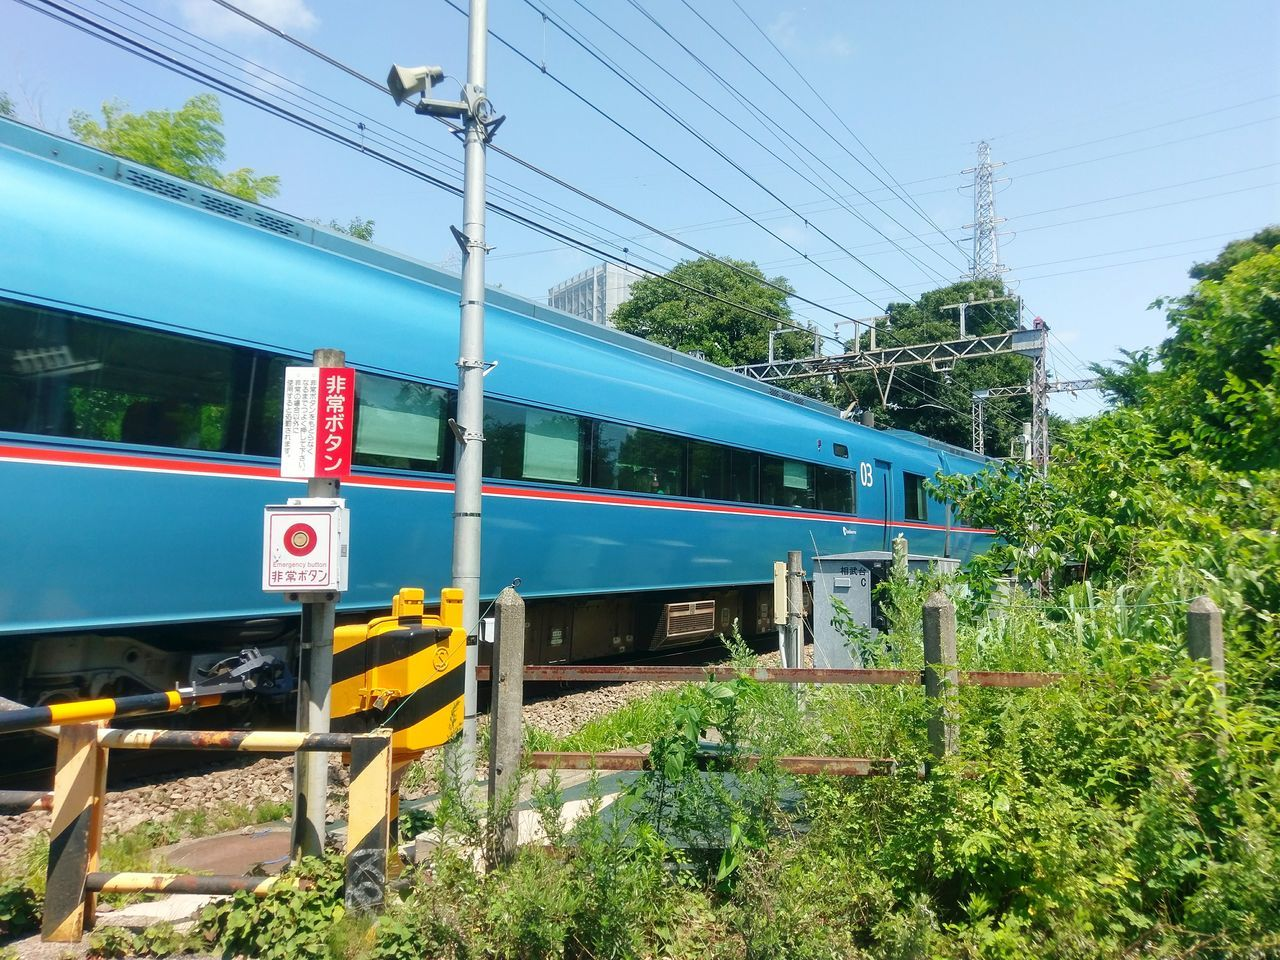 transportation, train - vehicle, cable, mode of transport, rail transportation, public transportation, railroad track, power line, connection, passenger train, day, tree, electricity pylon, land vehicle, power supply, outdoors, green color, electricity, no people, sky, plant, blue, clear sky, locomotive, nature